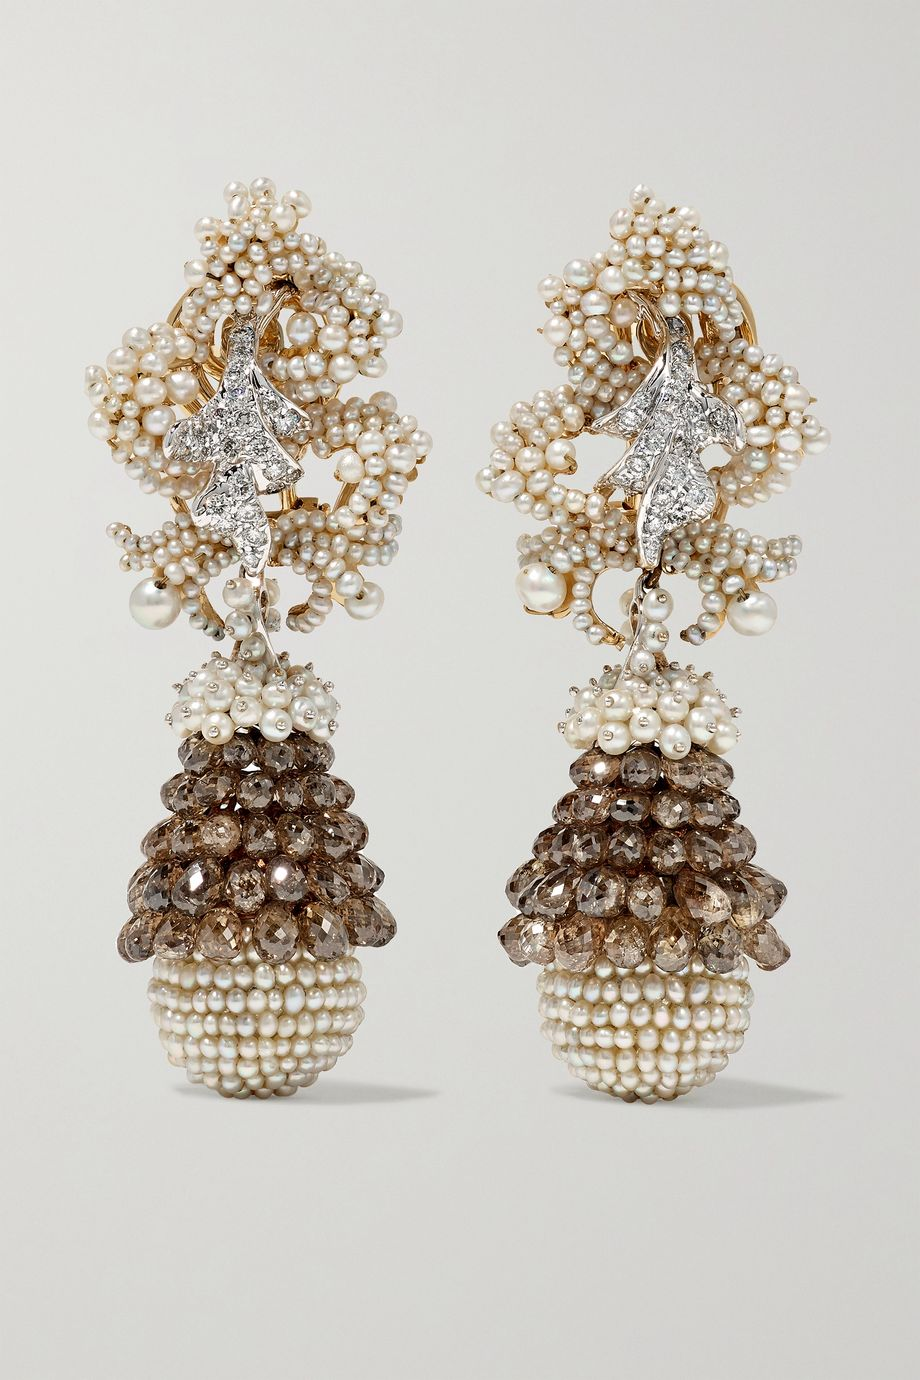 Bina Goenka 18-karat gold, diamond and pearl earrings